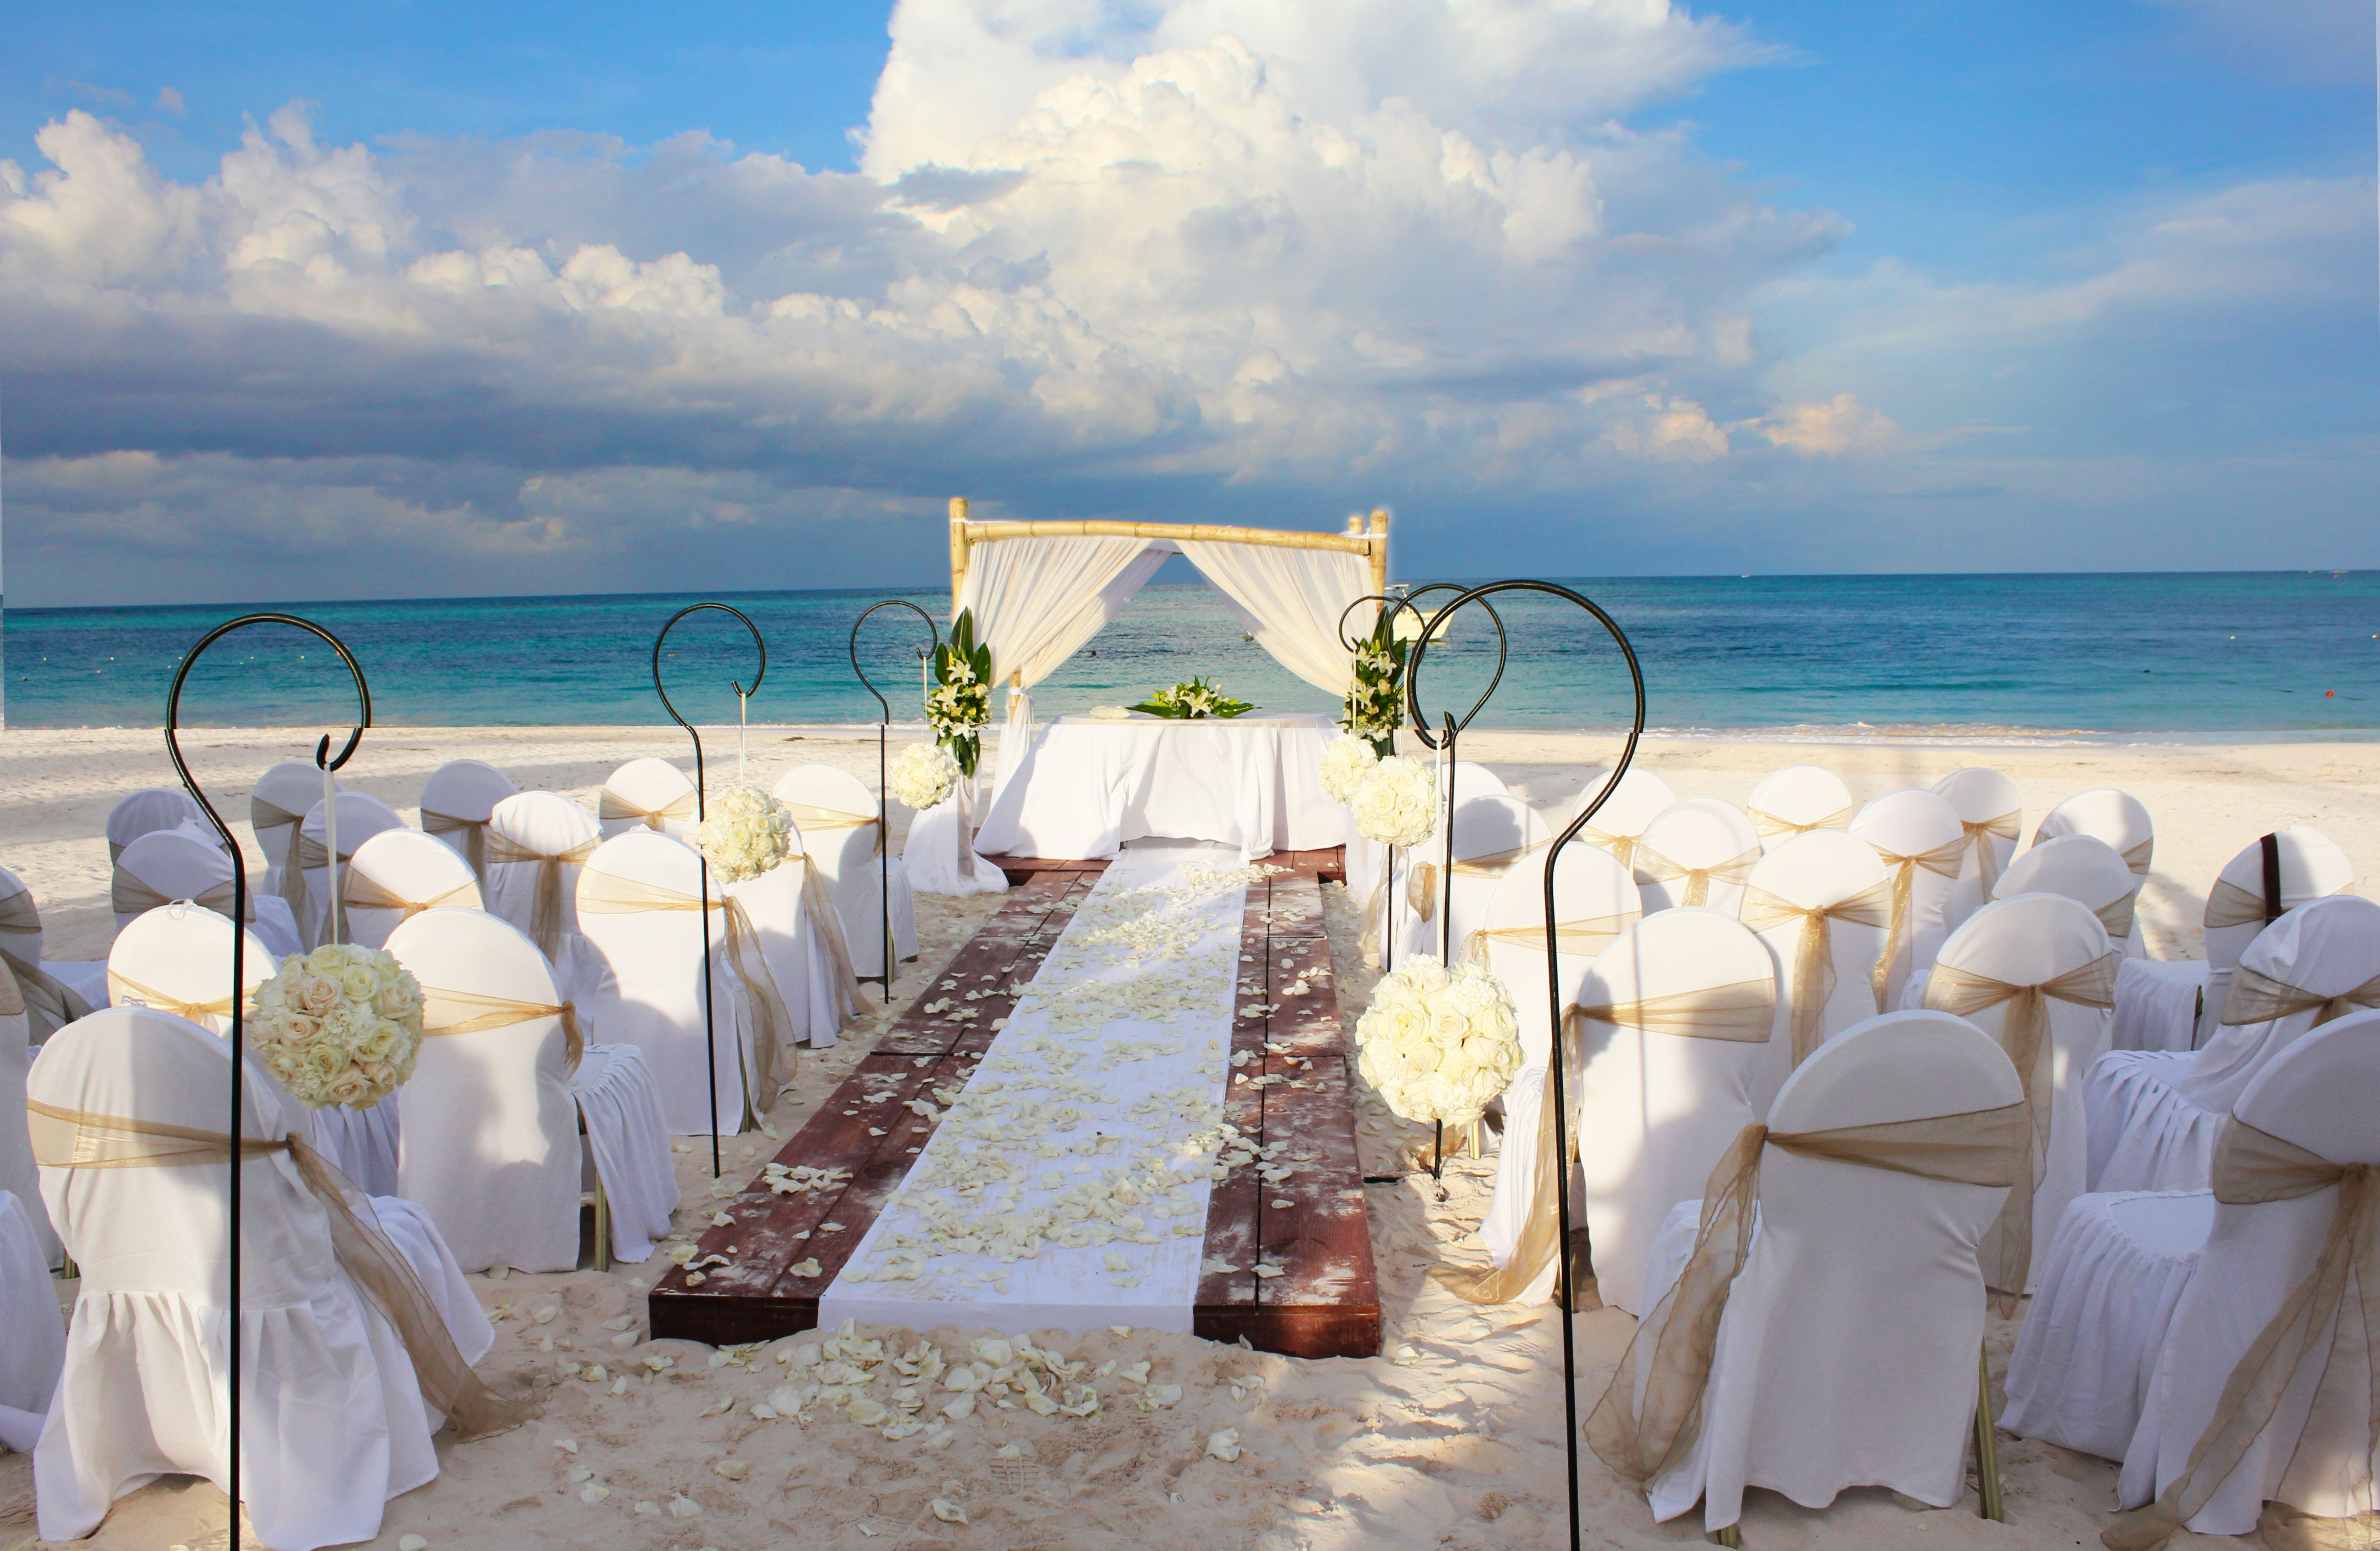 Emily S Destination Wedding Will Take Place Here June 2017 Punta Cana Now Larimar Resort Dominican Republic